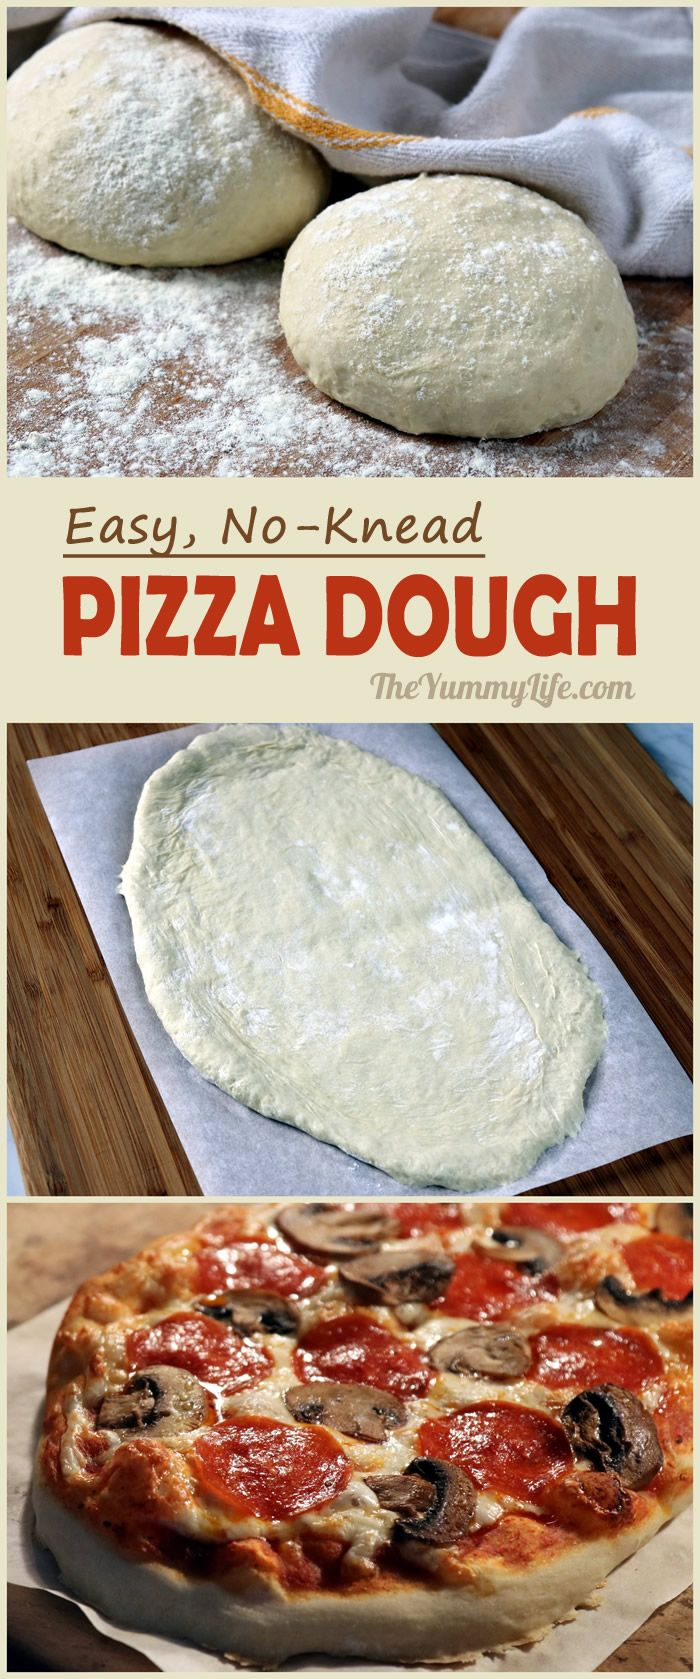 Use this easy, no proofing, no knead dough for making authentic, Neapolitan-style pizza at home. Dough keeps in the fridge for up to 5 days and may be frozen for up to 1 month. From TheYummyLife.com